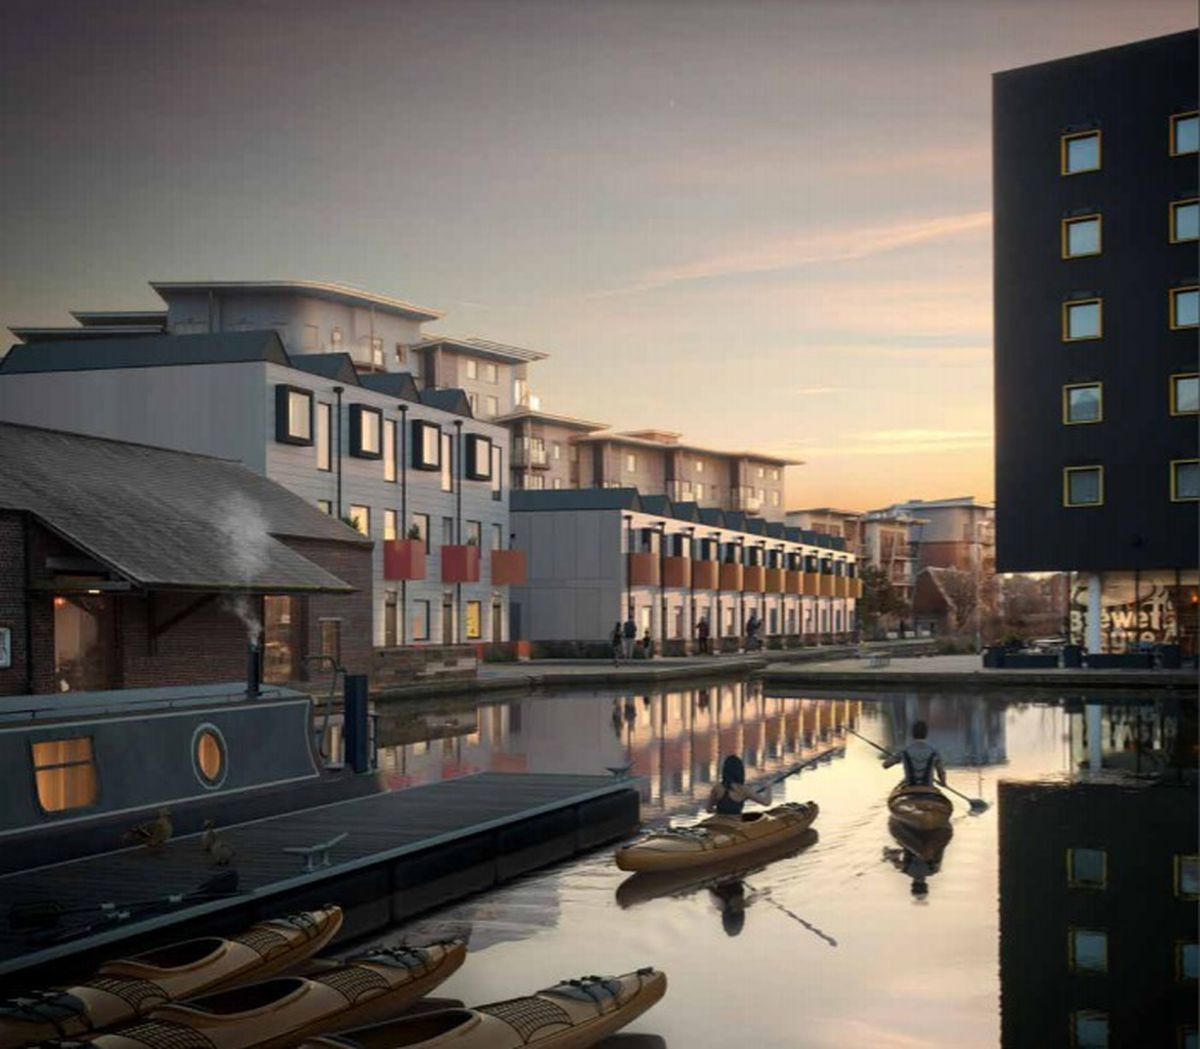 Artist impression of the proposed Walsall Waterside development. PIC: Shed KM